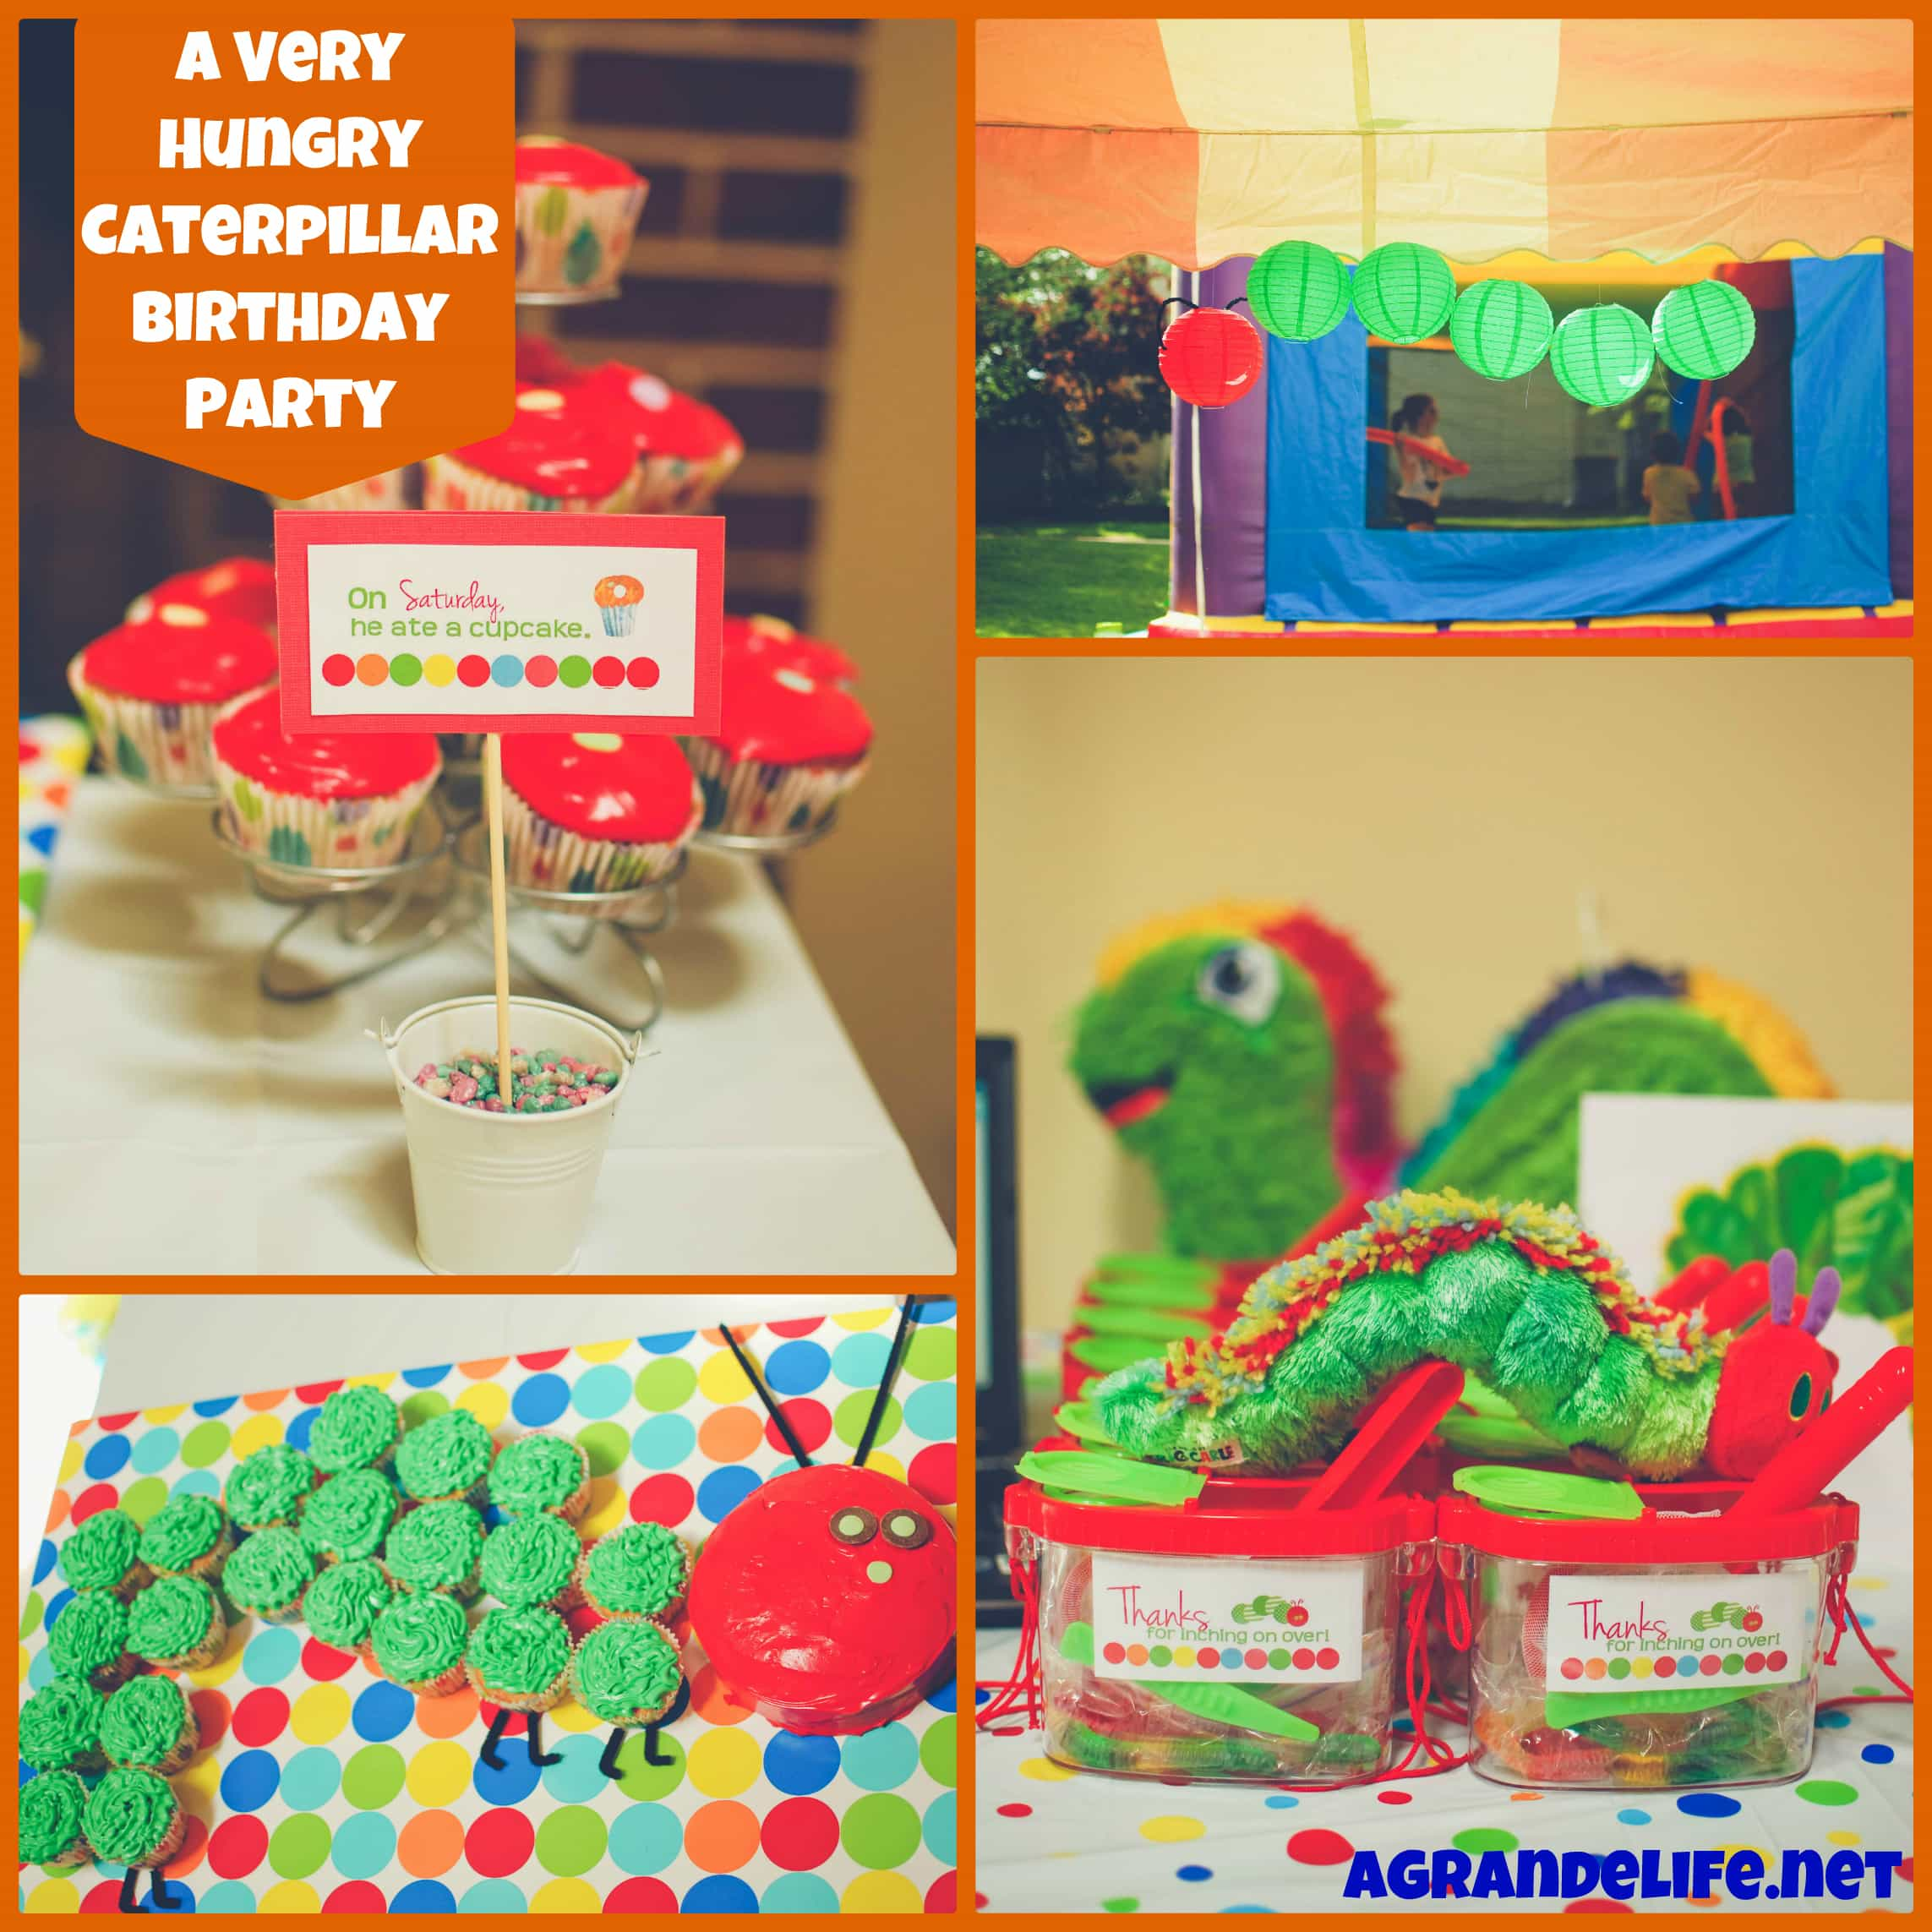 2017 05 the very hungry caterpillar lesson plans - A Very Hungry Caterpillar Birthday Party